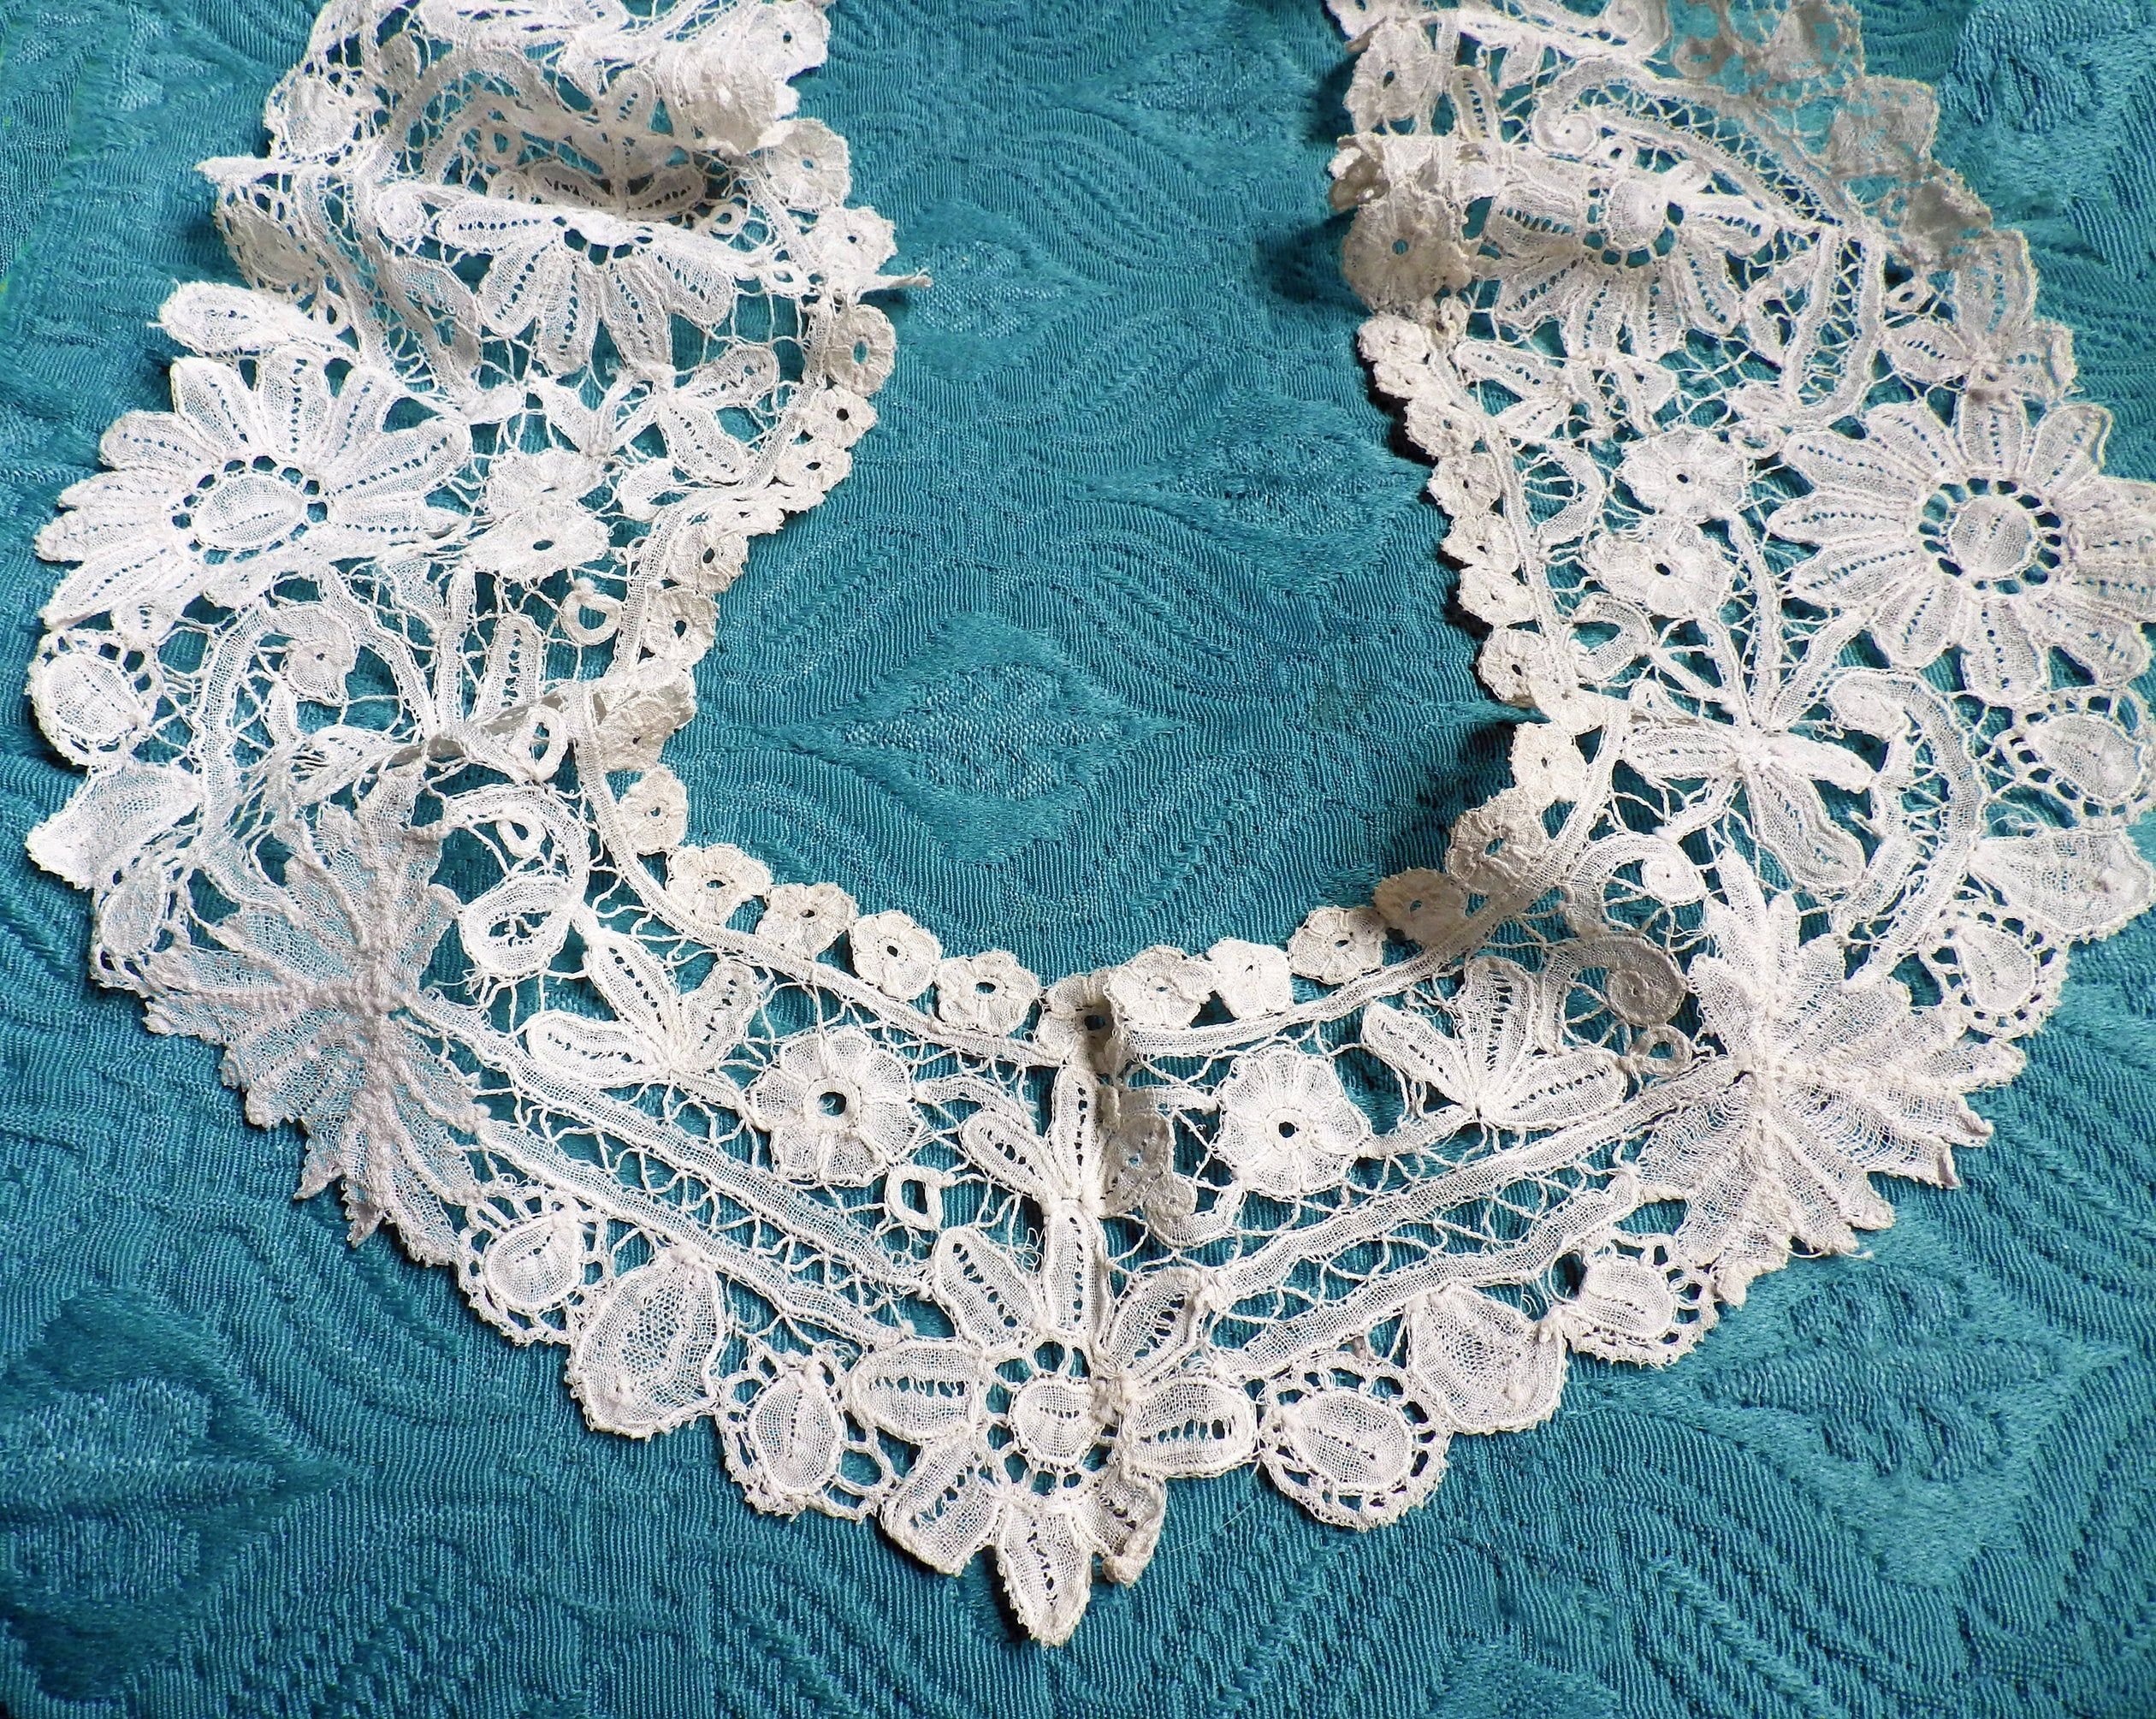 Collectible Victorian or Edwardian Fashion Gorgeous Antique White Lace Collar museum quality